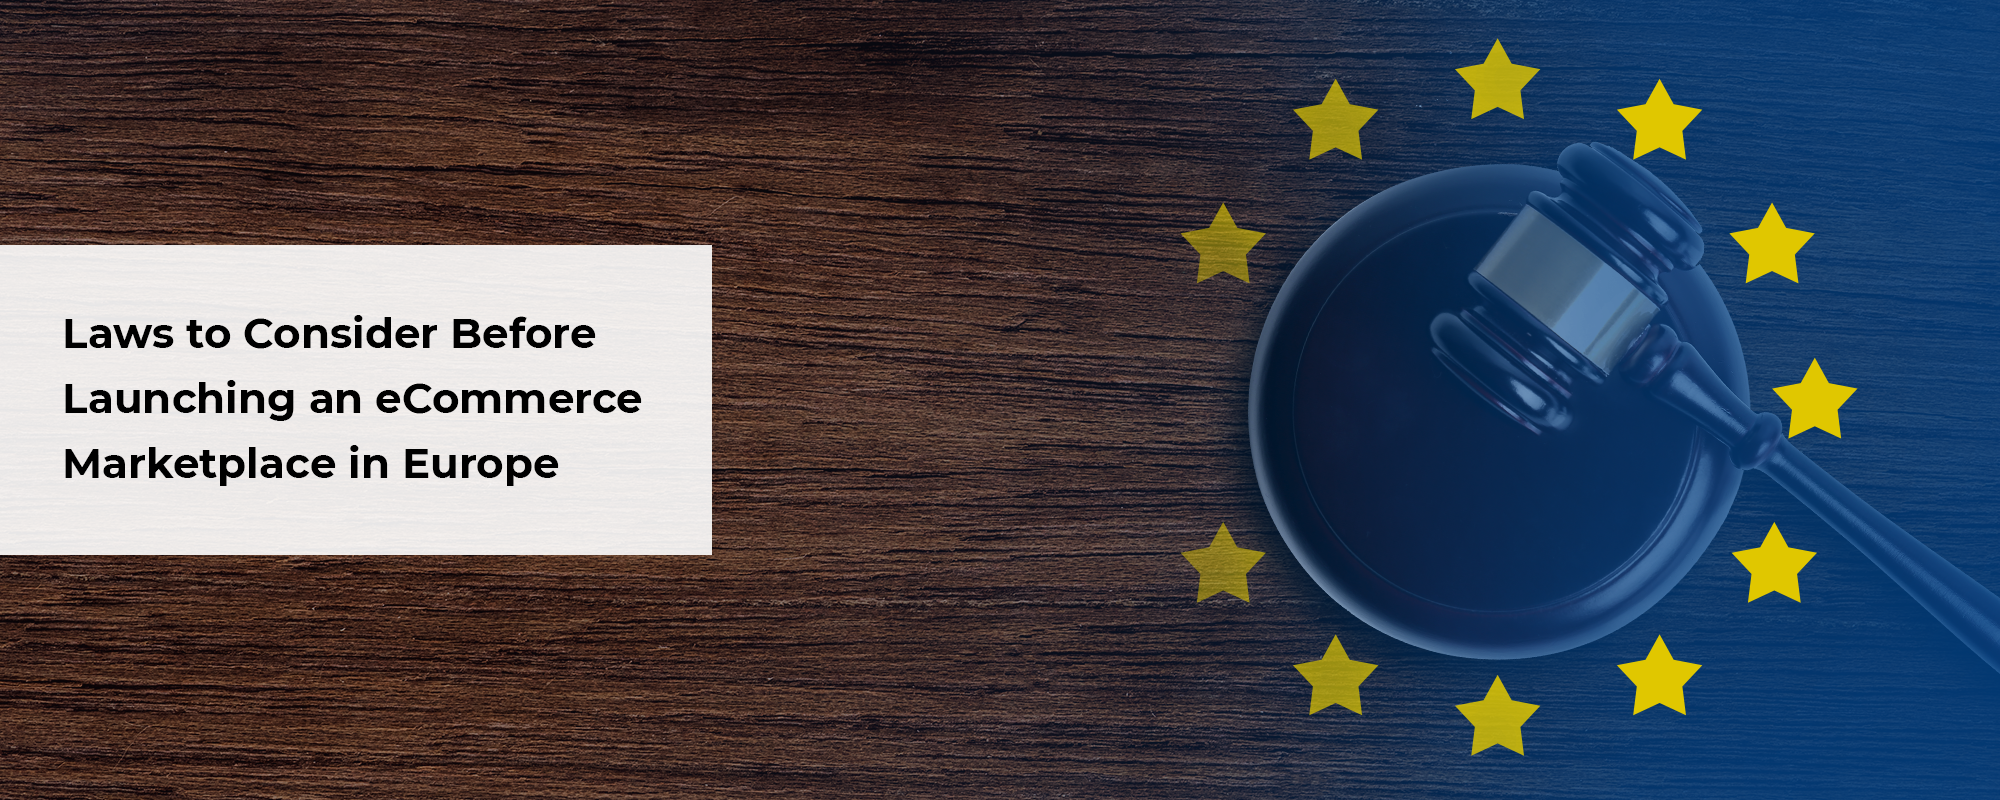 Legal requirements for launching an eCommerce marketplace in Europe